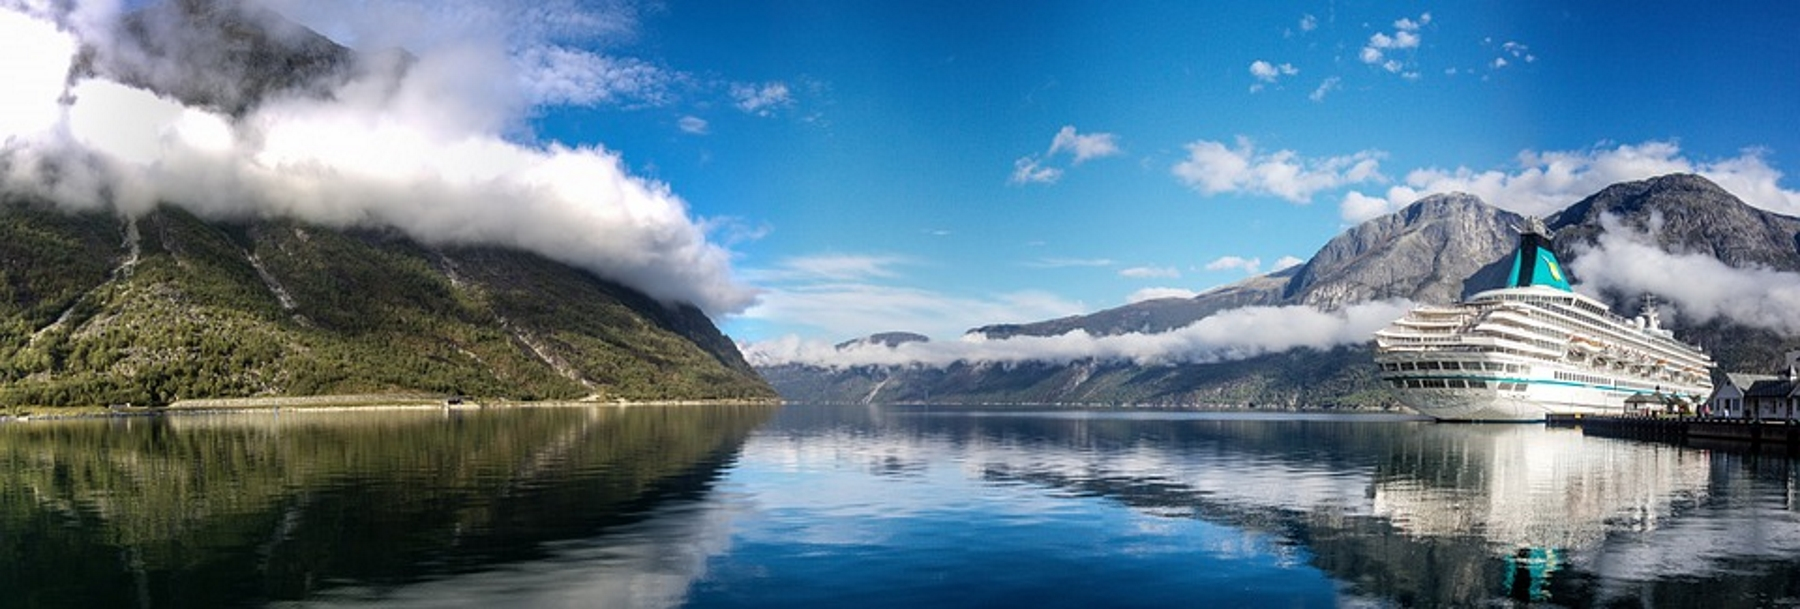 Norway-fjord-panorama-boat-mountain-water-landscape